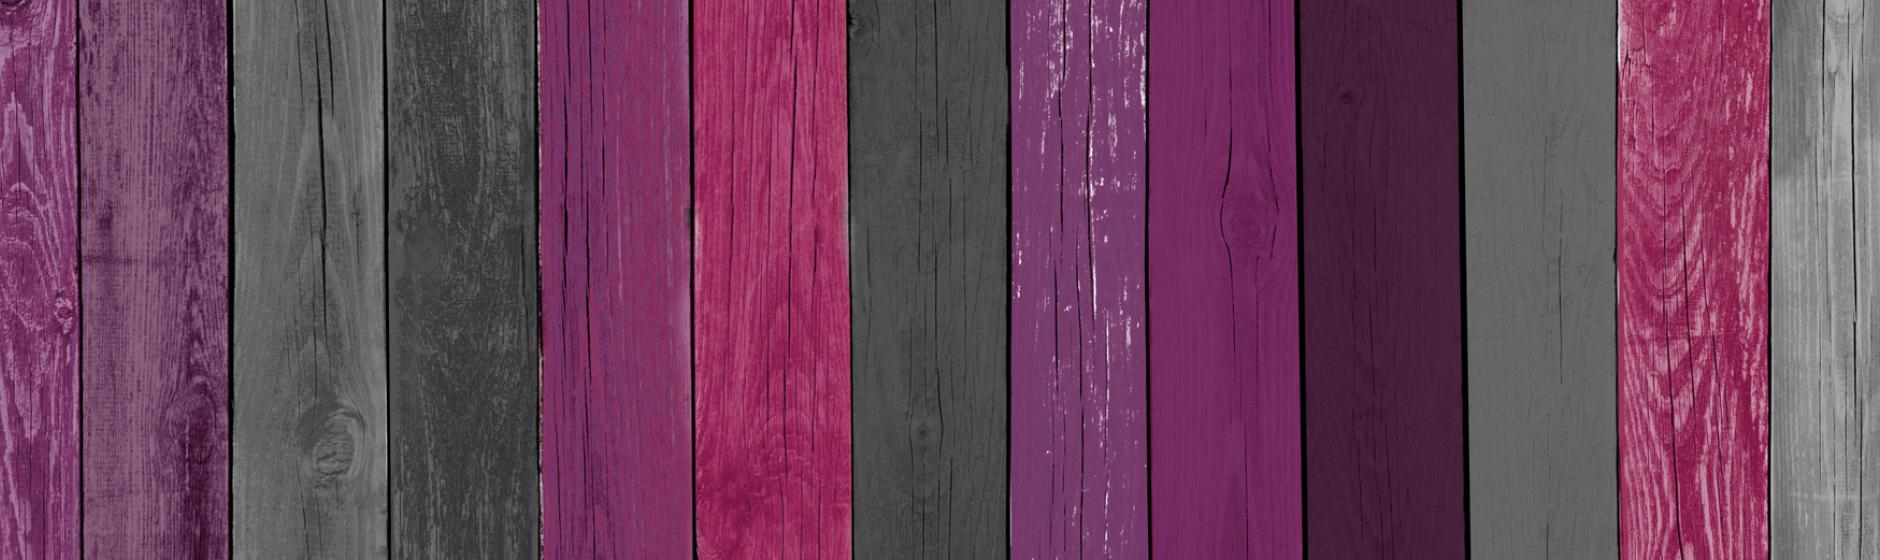 Purple and Gray Wood Panels